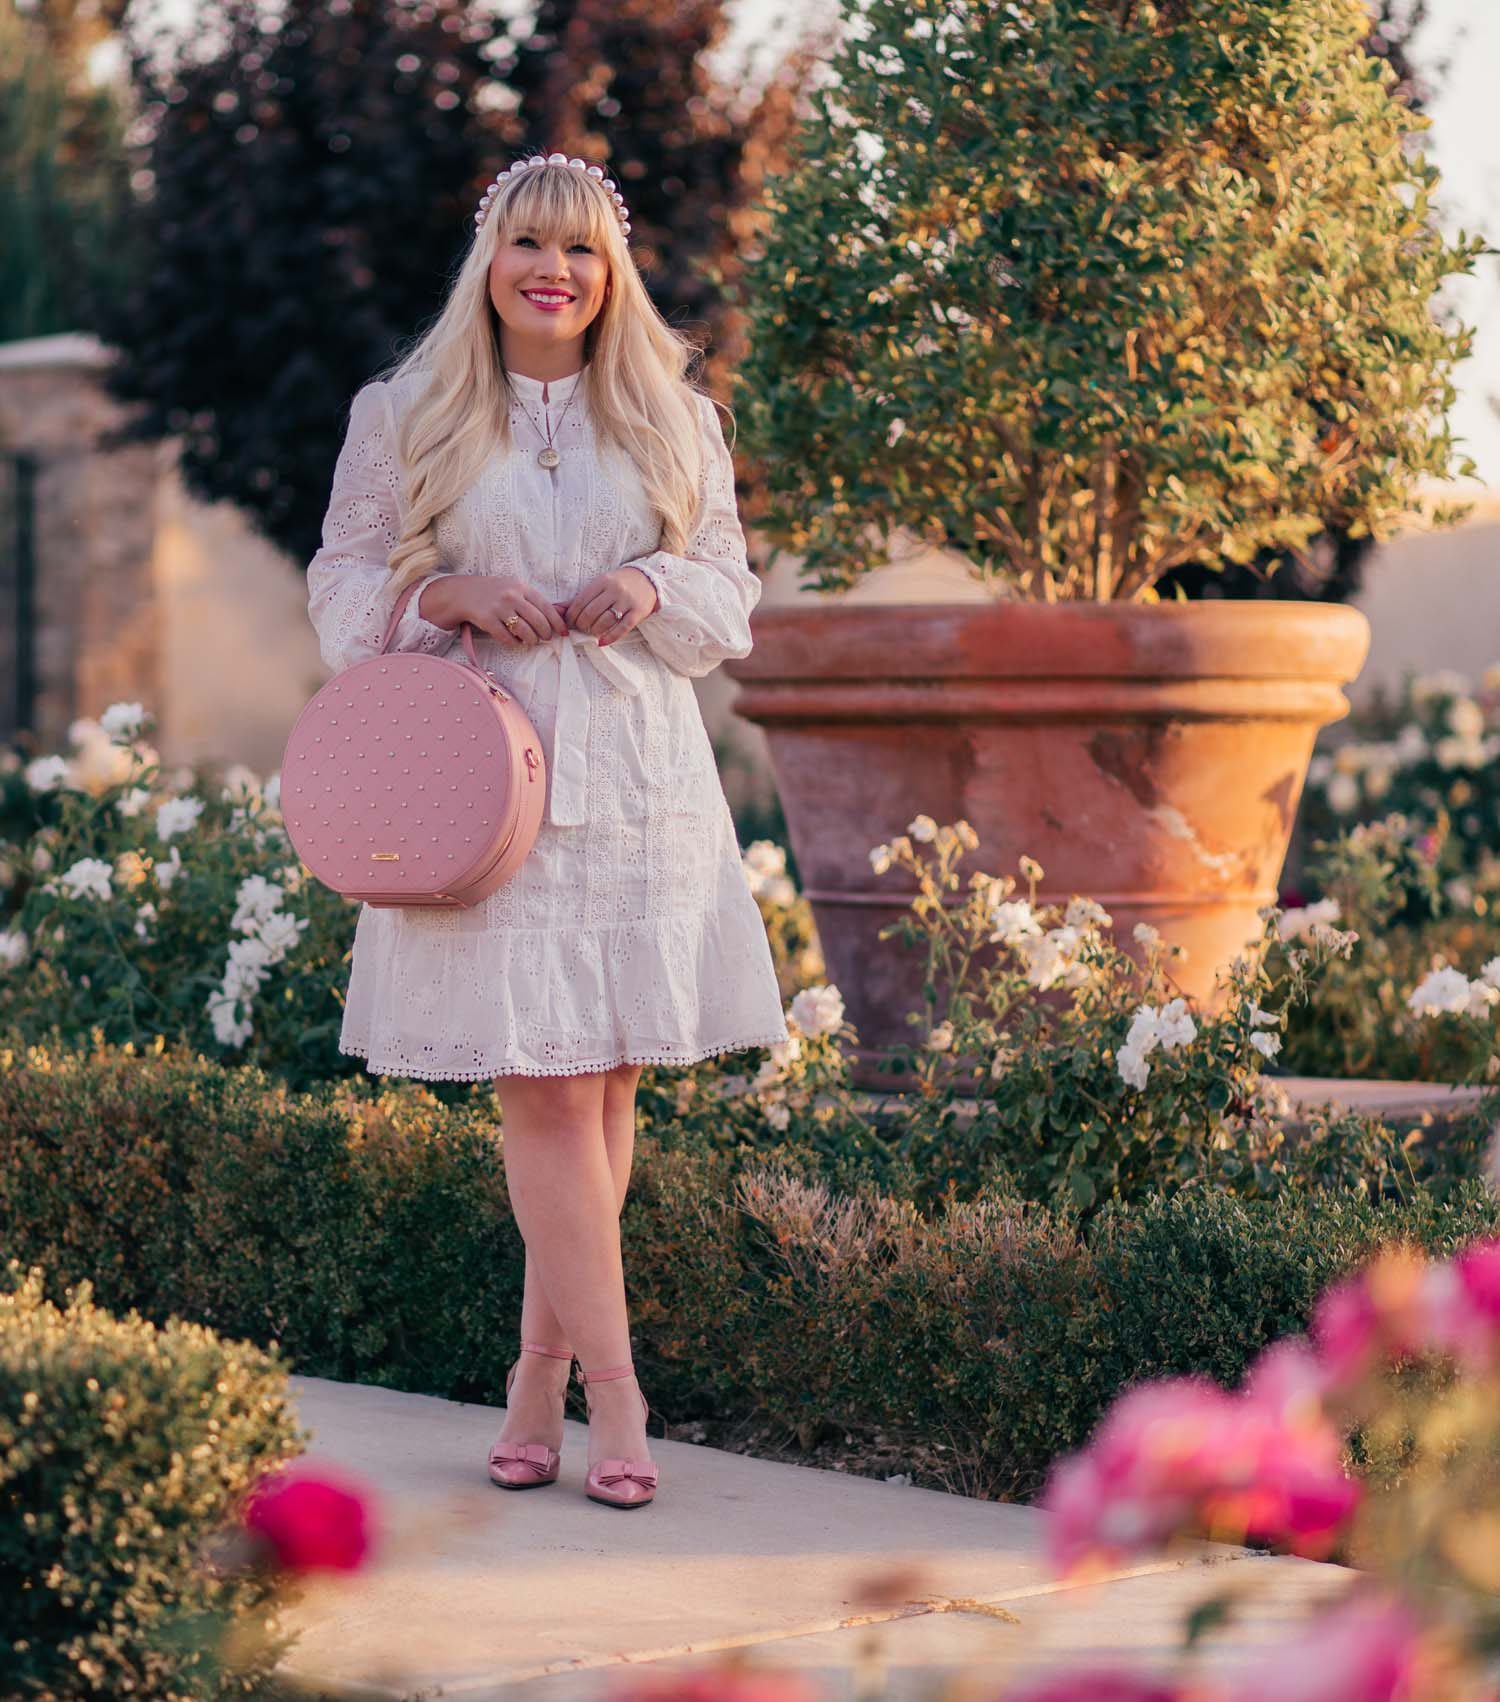 Elizabeth Hugen of Lizzie in Lace shares 12 Feminine Valentine's Day Outfit Ideas